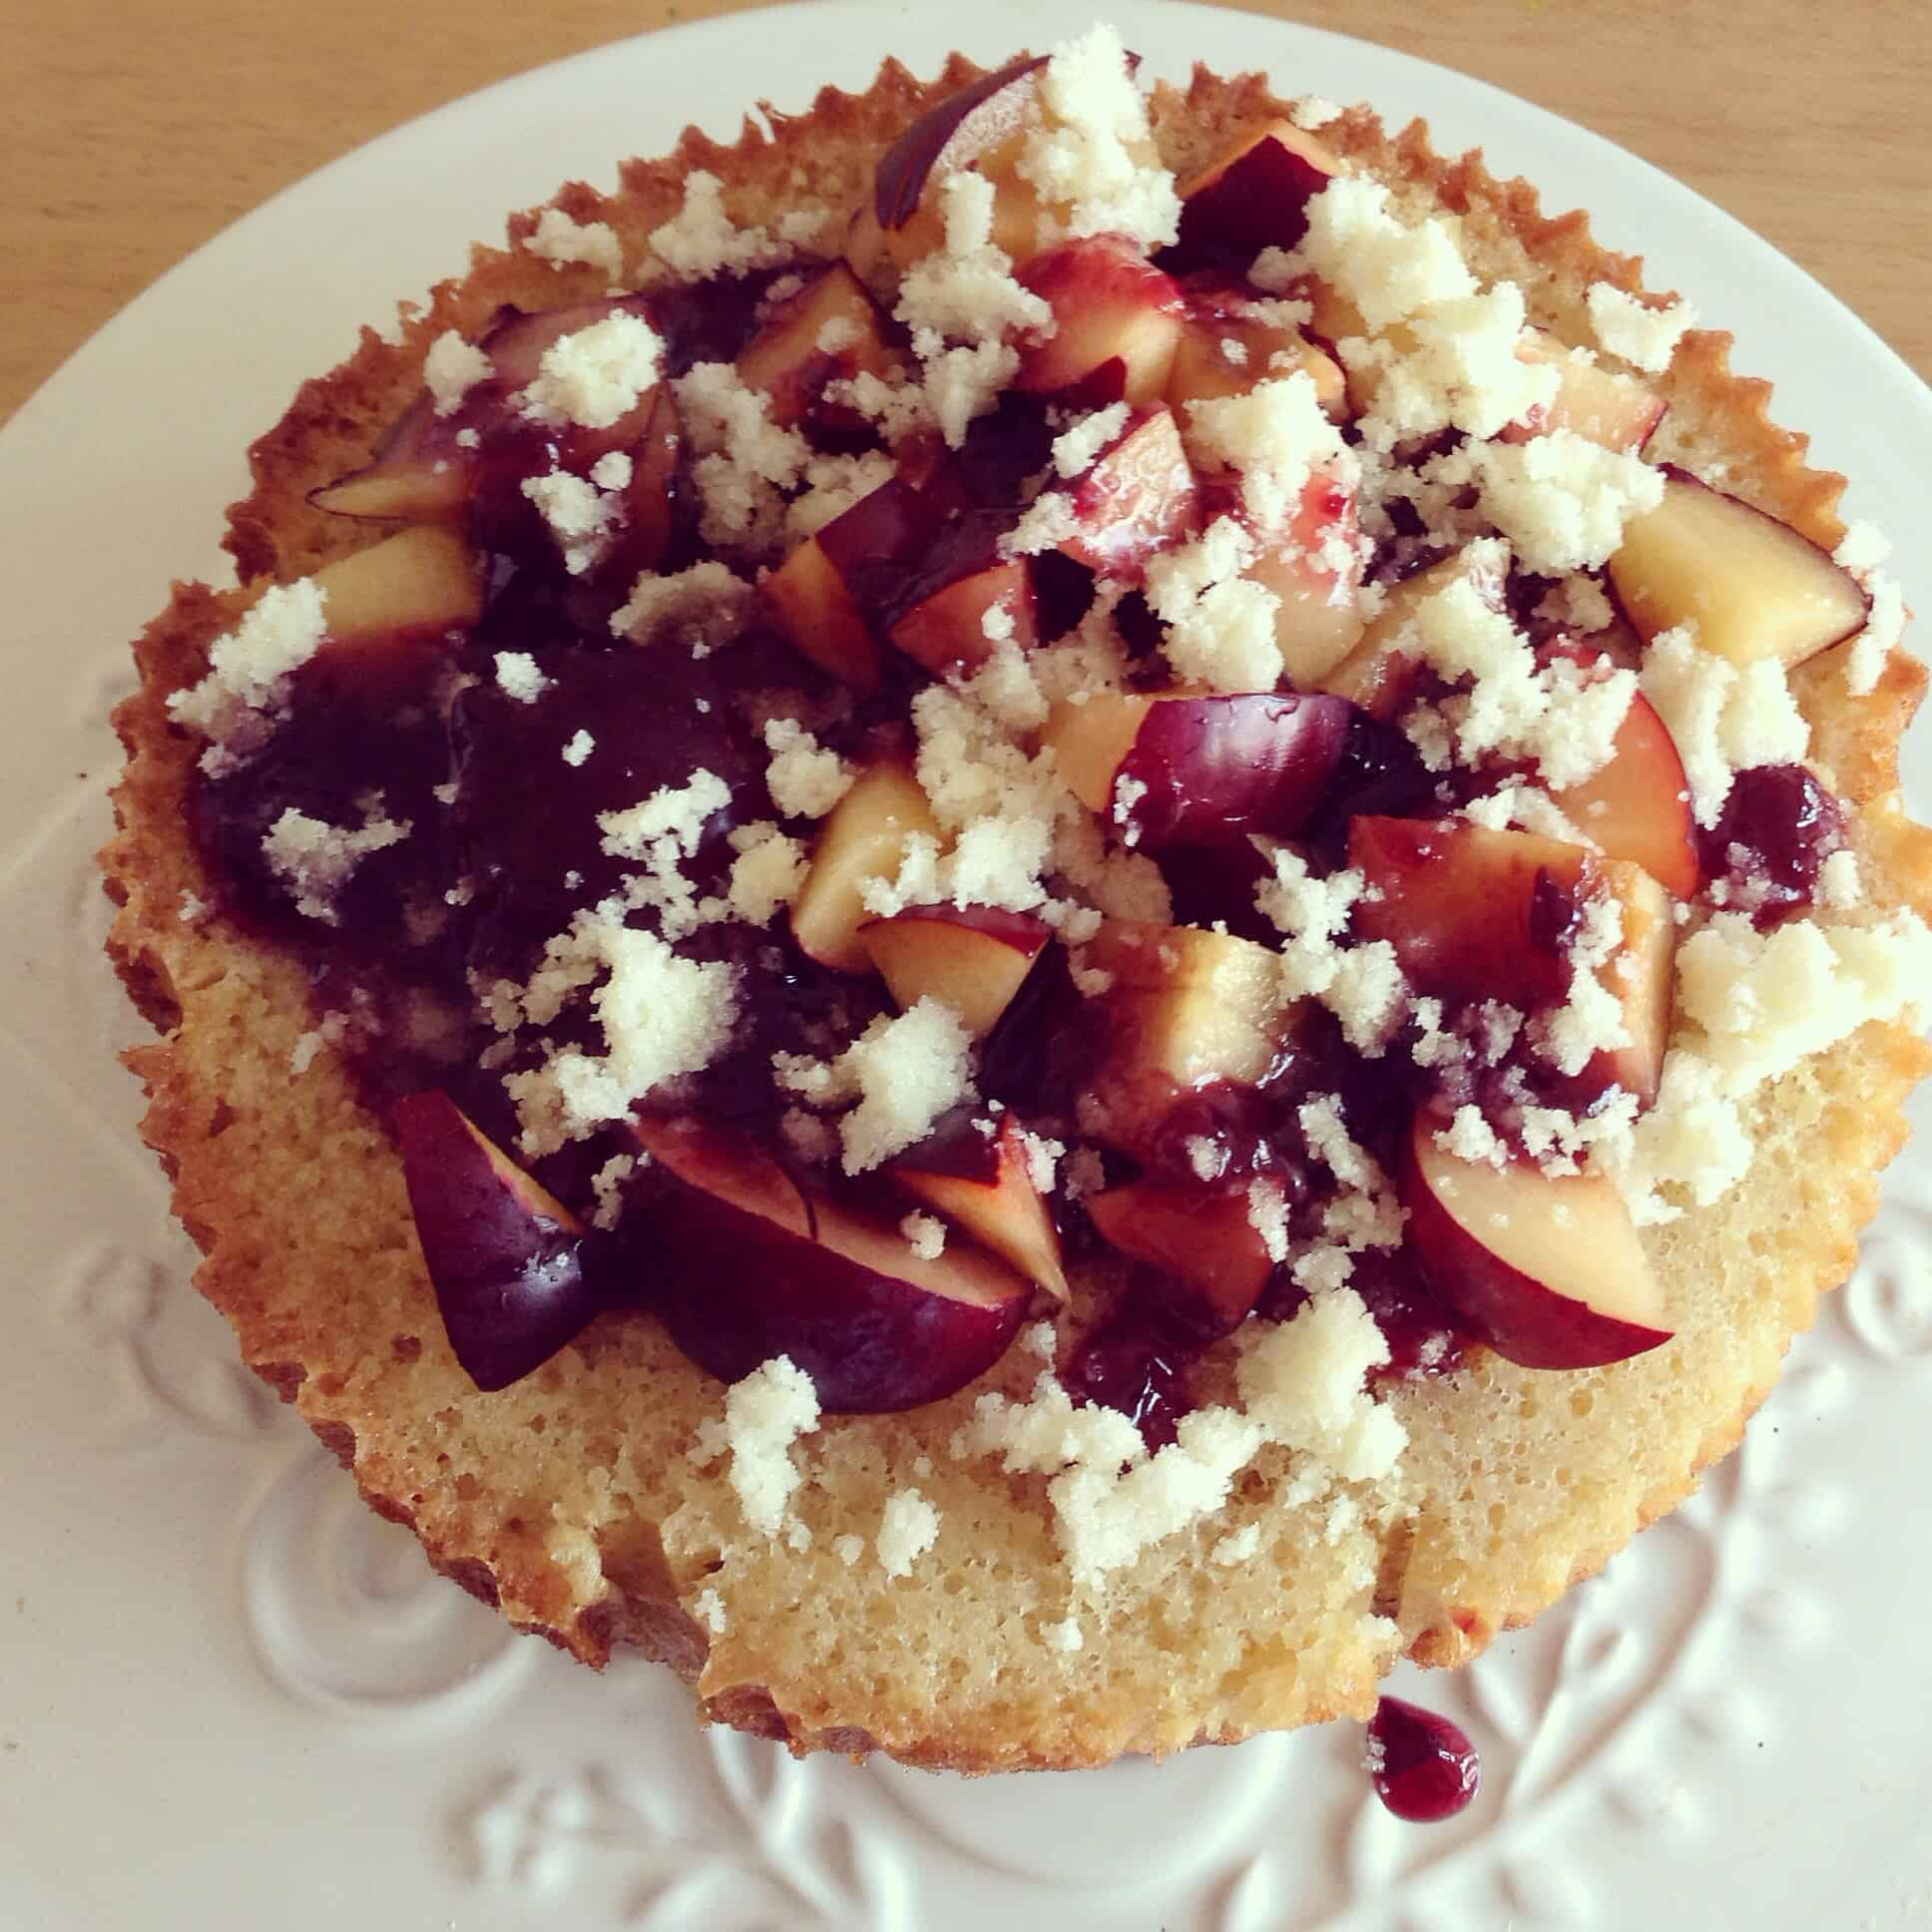 Slow Cooker Plum and Almond Cake